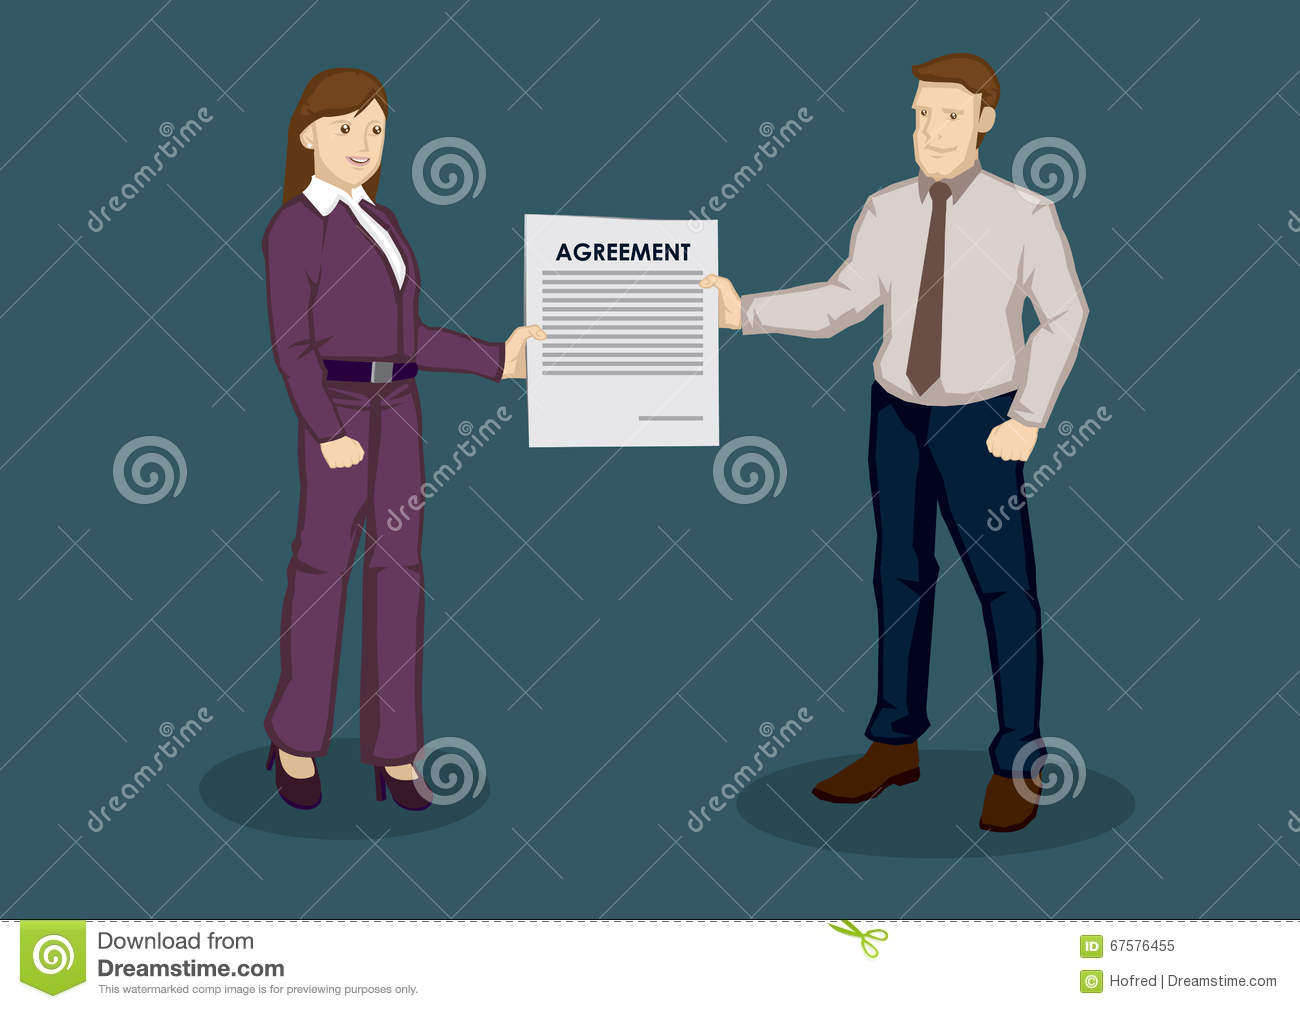 Business Agreement Cartoon Vector Illustration Vector – Free Business Contract